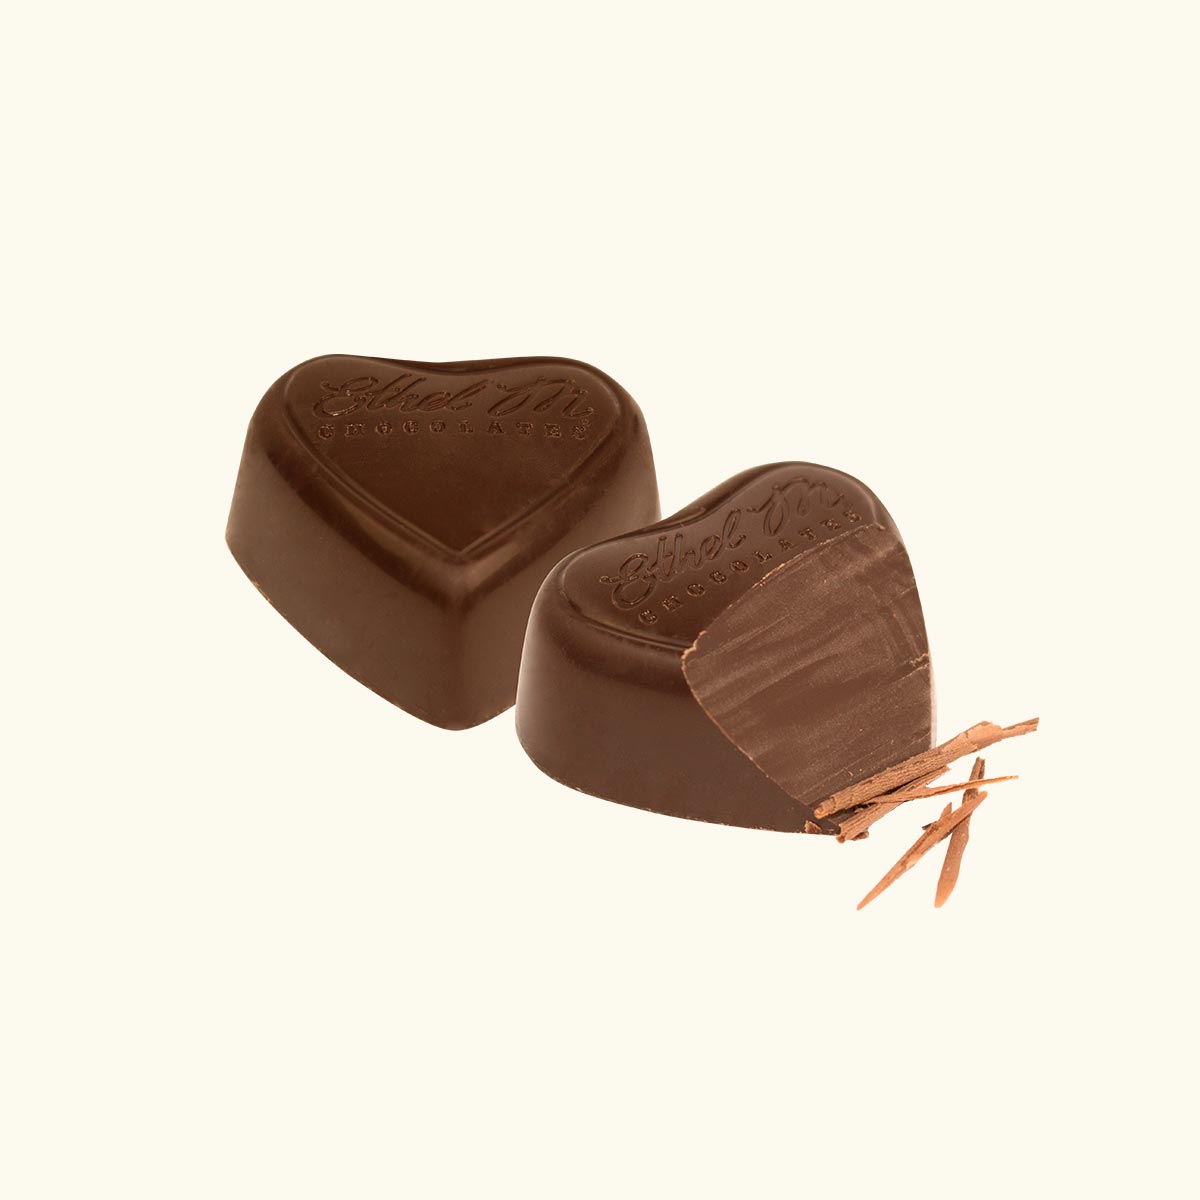 Ethel_M_Chocolates_Solid_Milk_Chocolate_Heart_Shaped_Individual_Piece_With_Internal_View